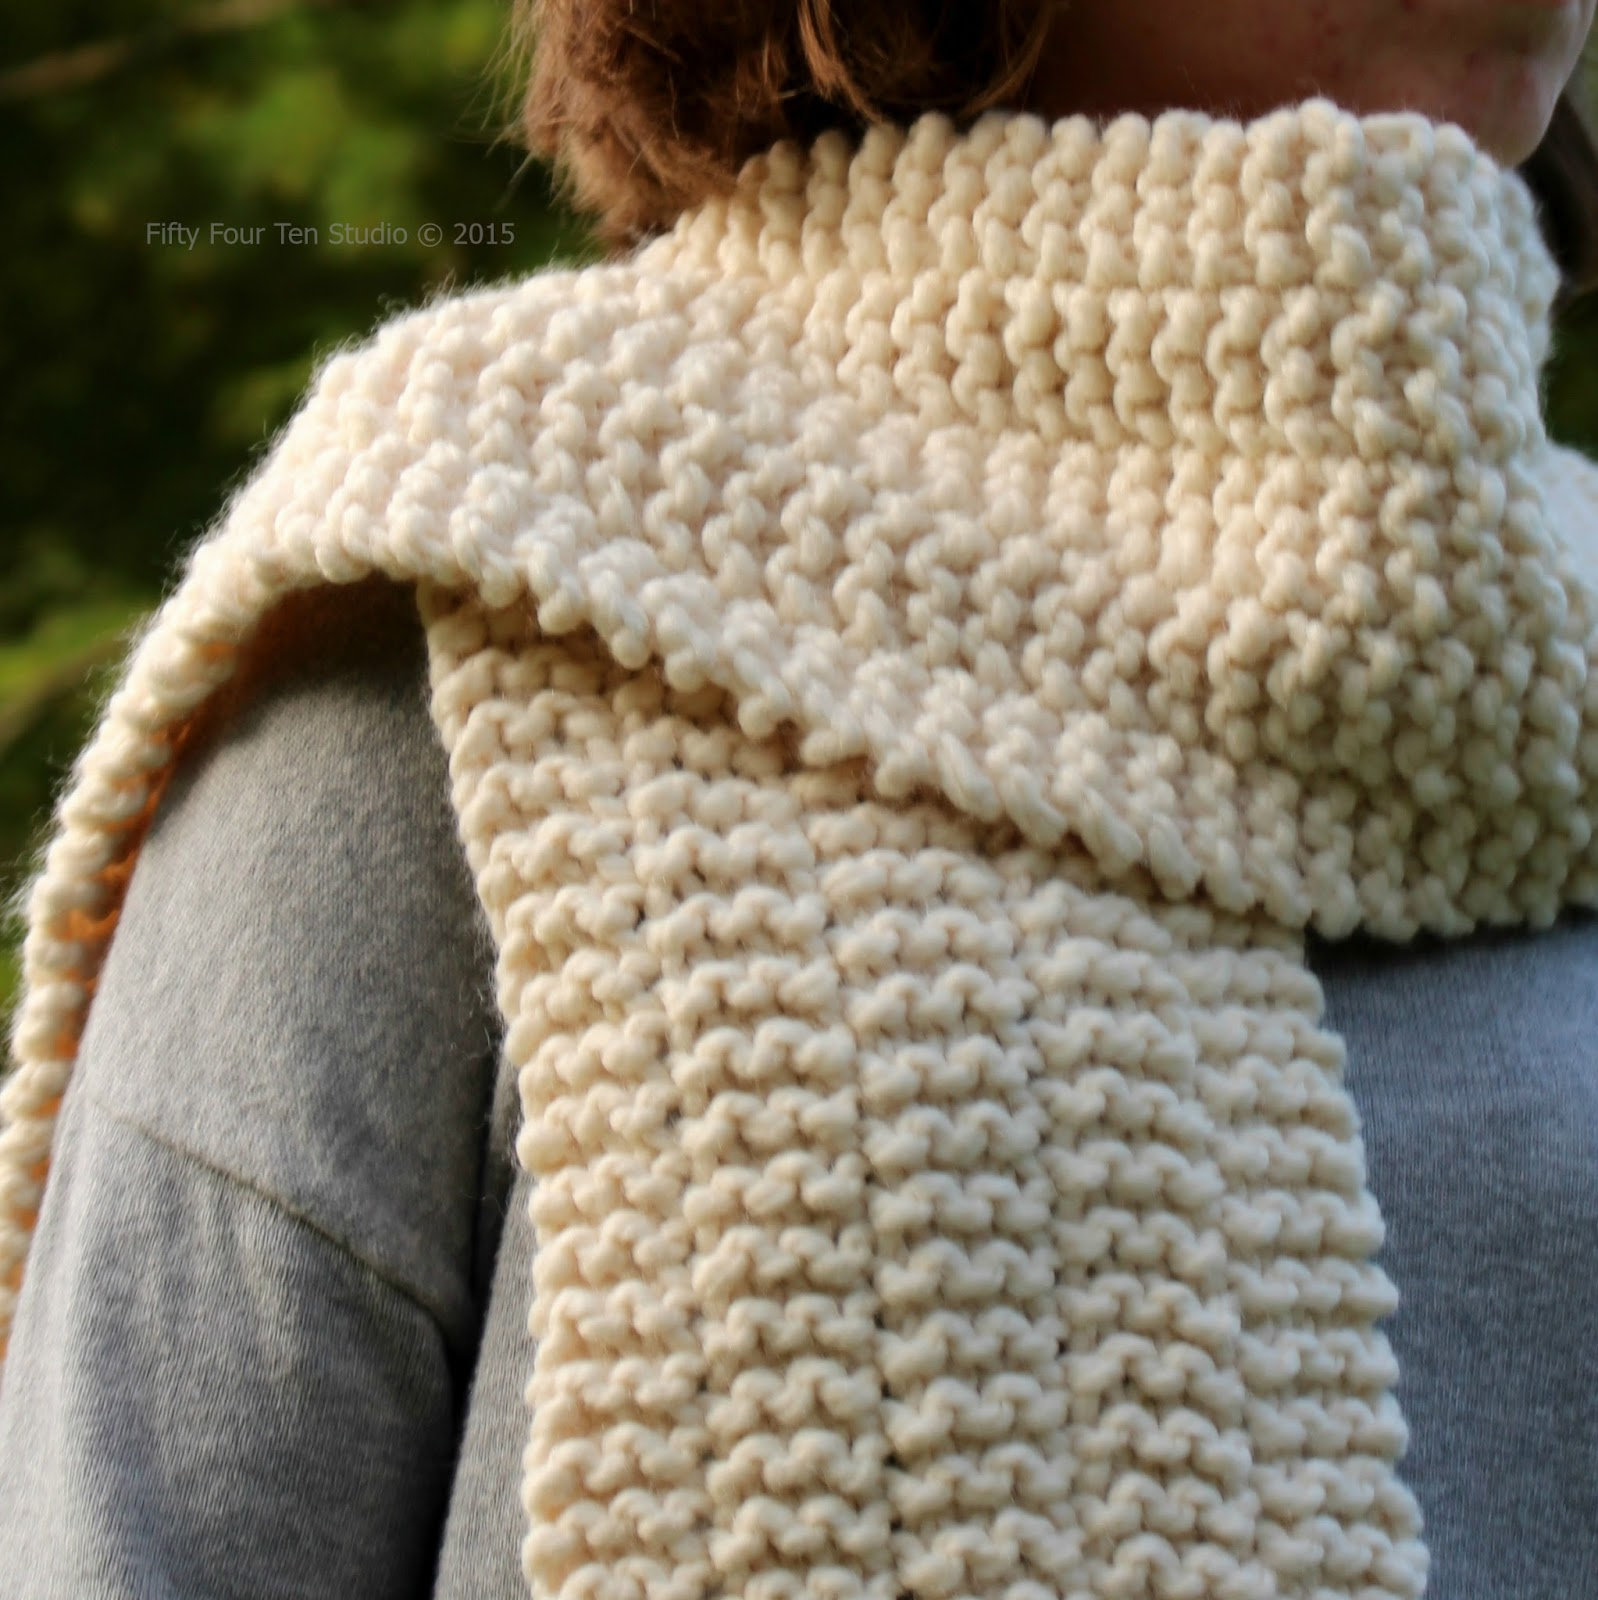 Fifty Four Ten Studio: New Easy Scarf Knitting Pattern ...